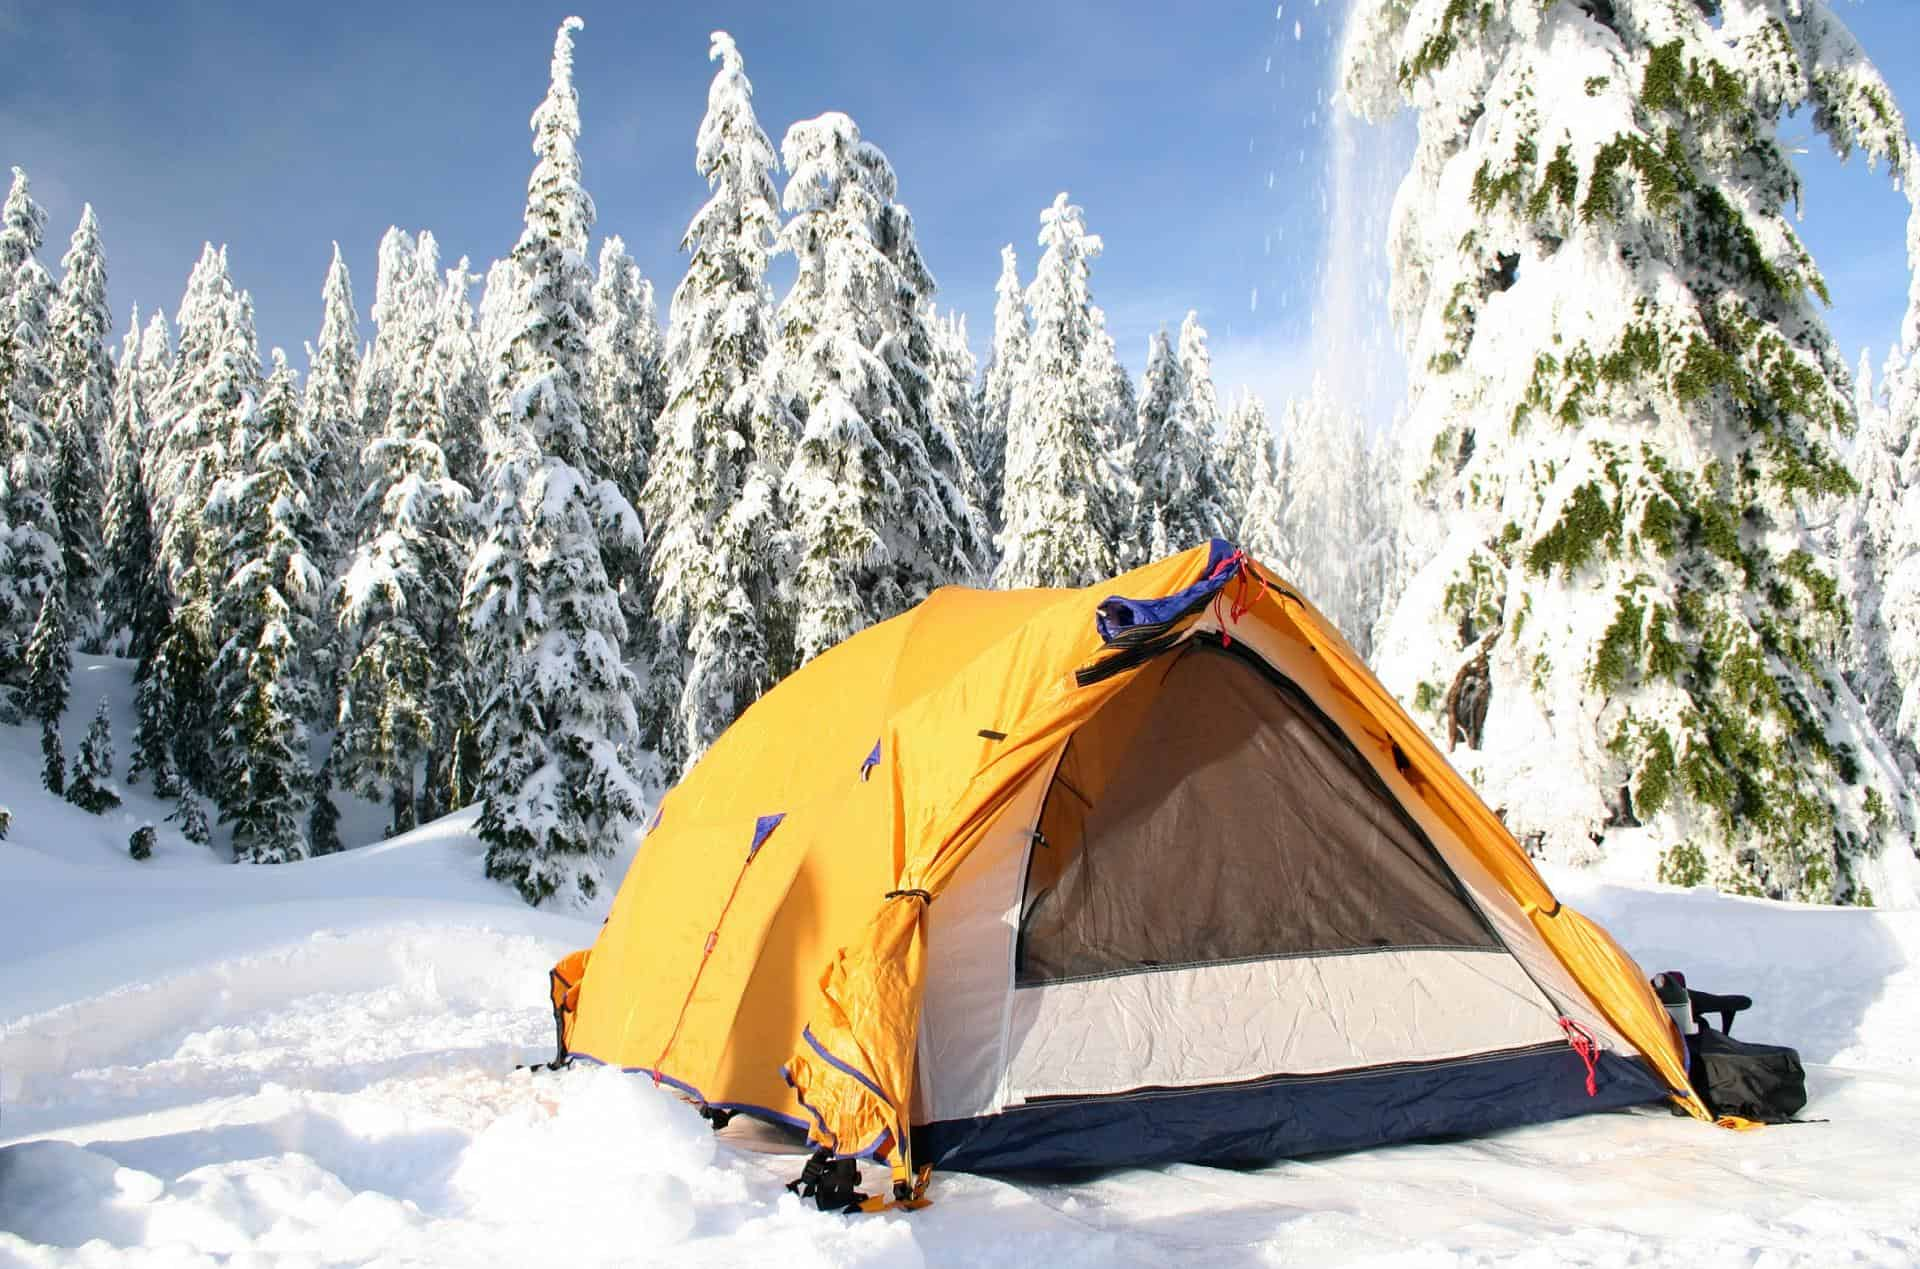 & 10 Awesome Places to go Winter Camping in Ontario - Explore Magazine